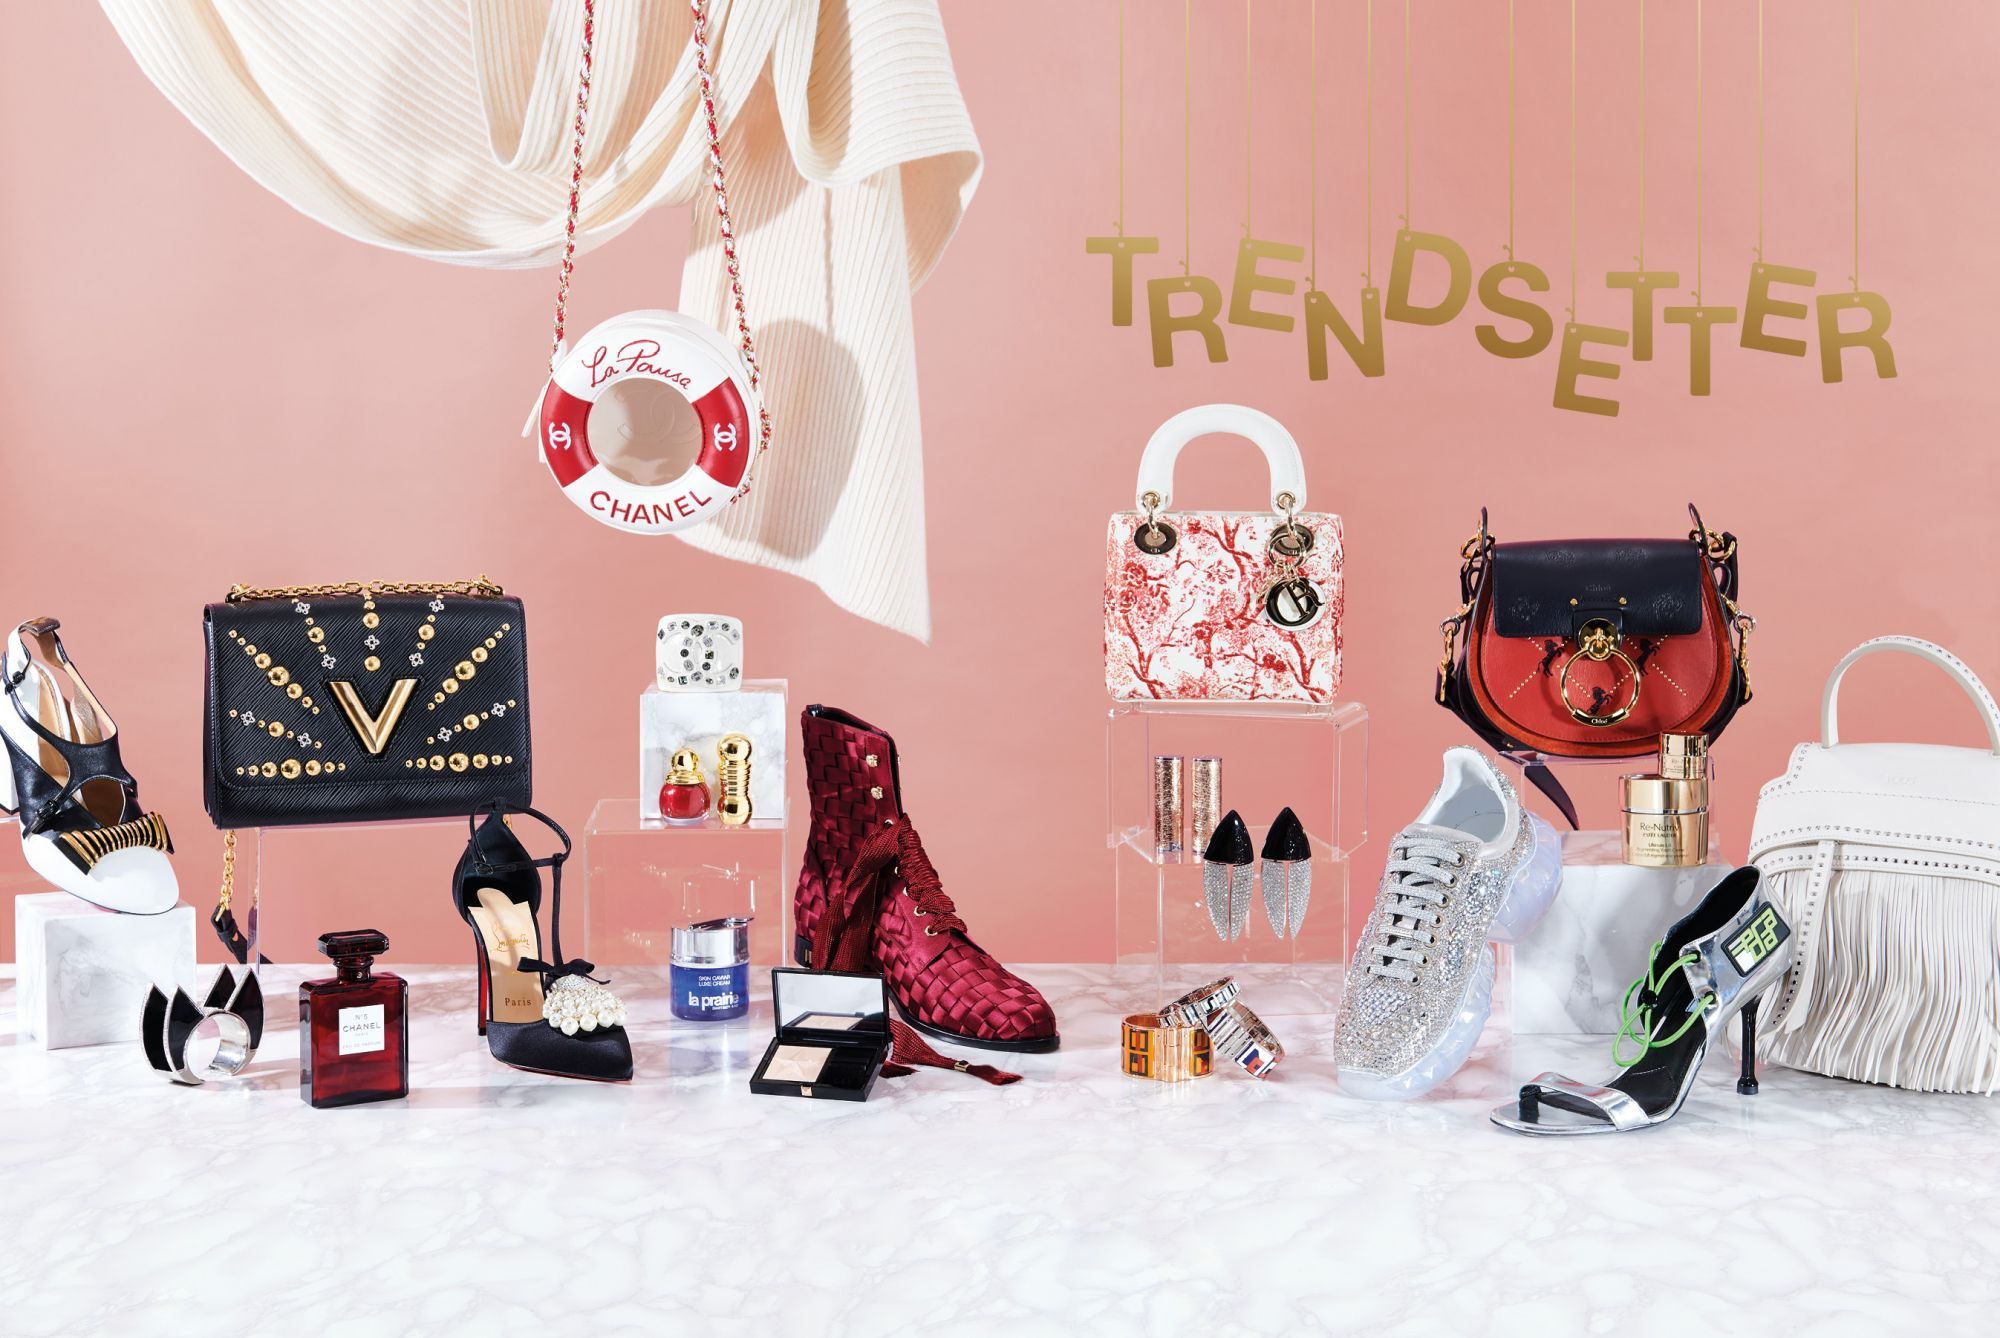 20 Sparkling Gift Ideas For Trendsetters